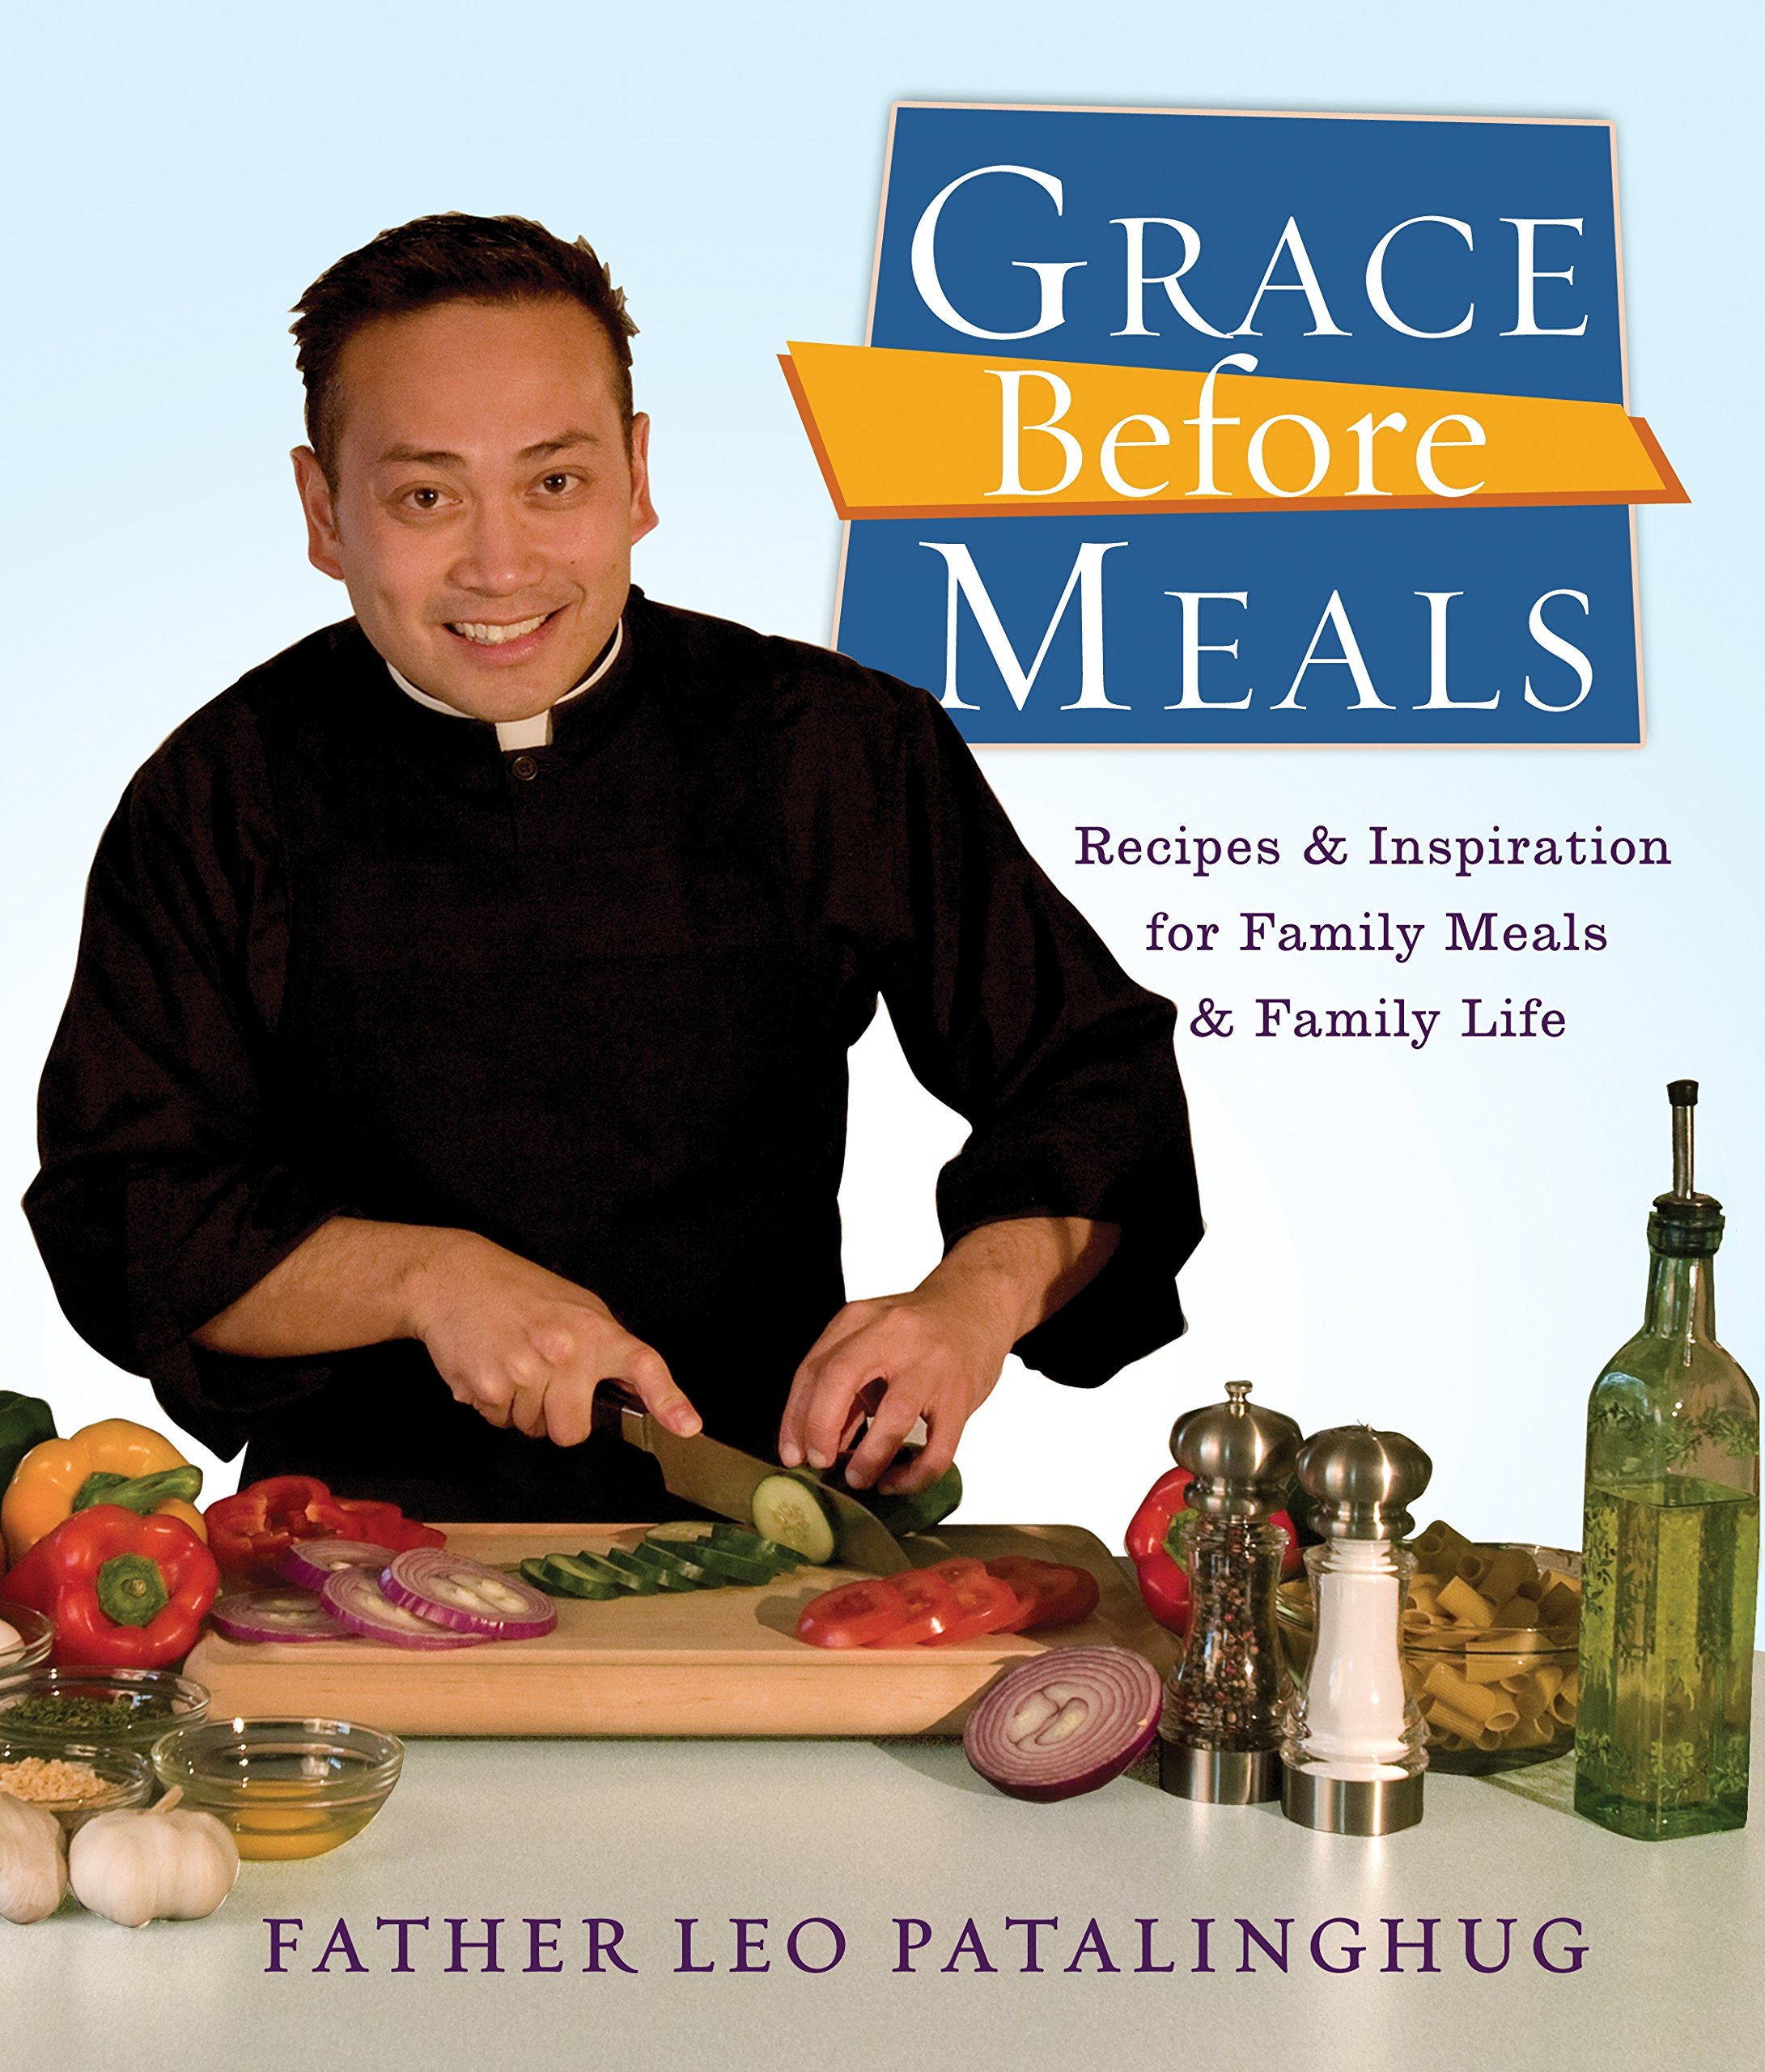 Grace Before Meals: Recipes and Inspiration for Family Meals and Family Life: A Cookbook: Patalinghug, Leo Father: 9780307717214: Amazon.com: Books